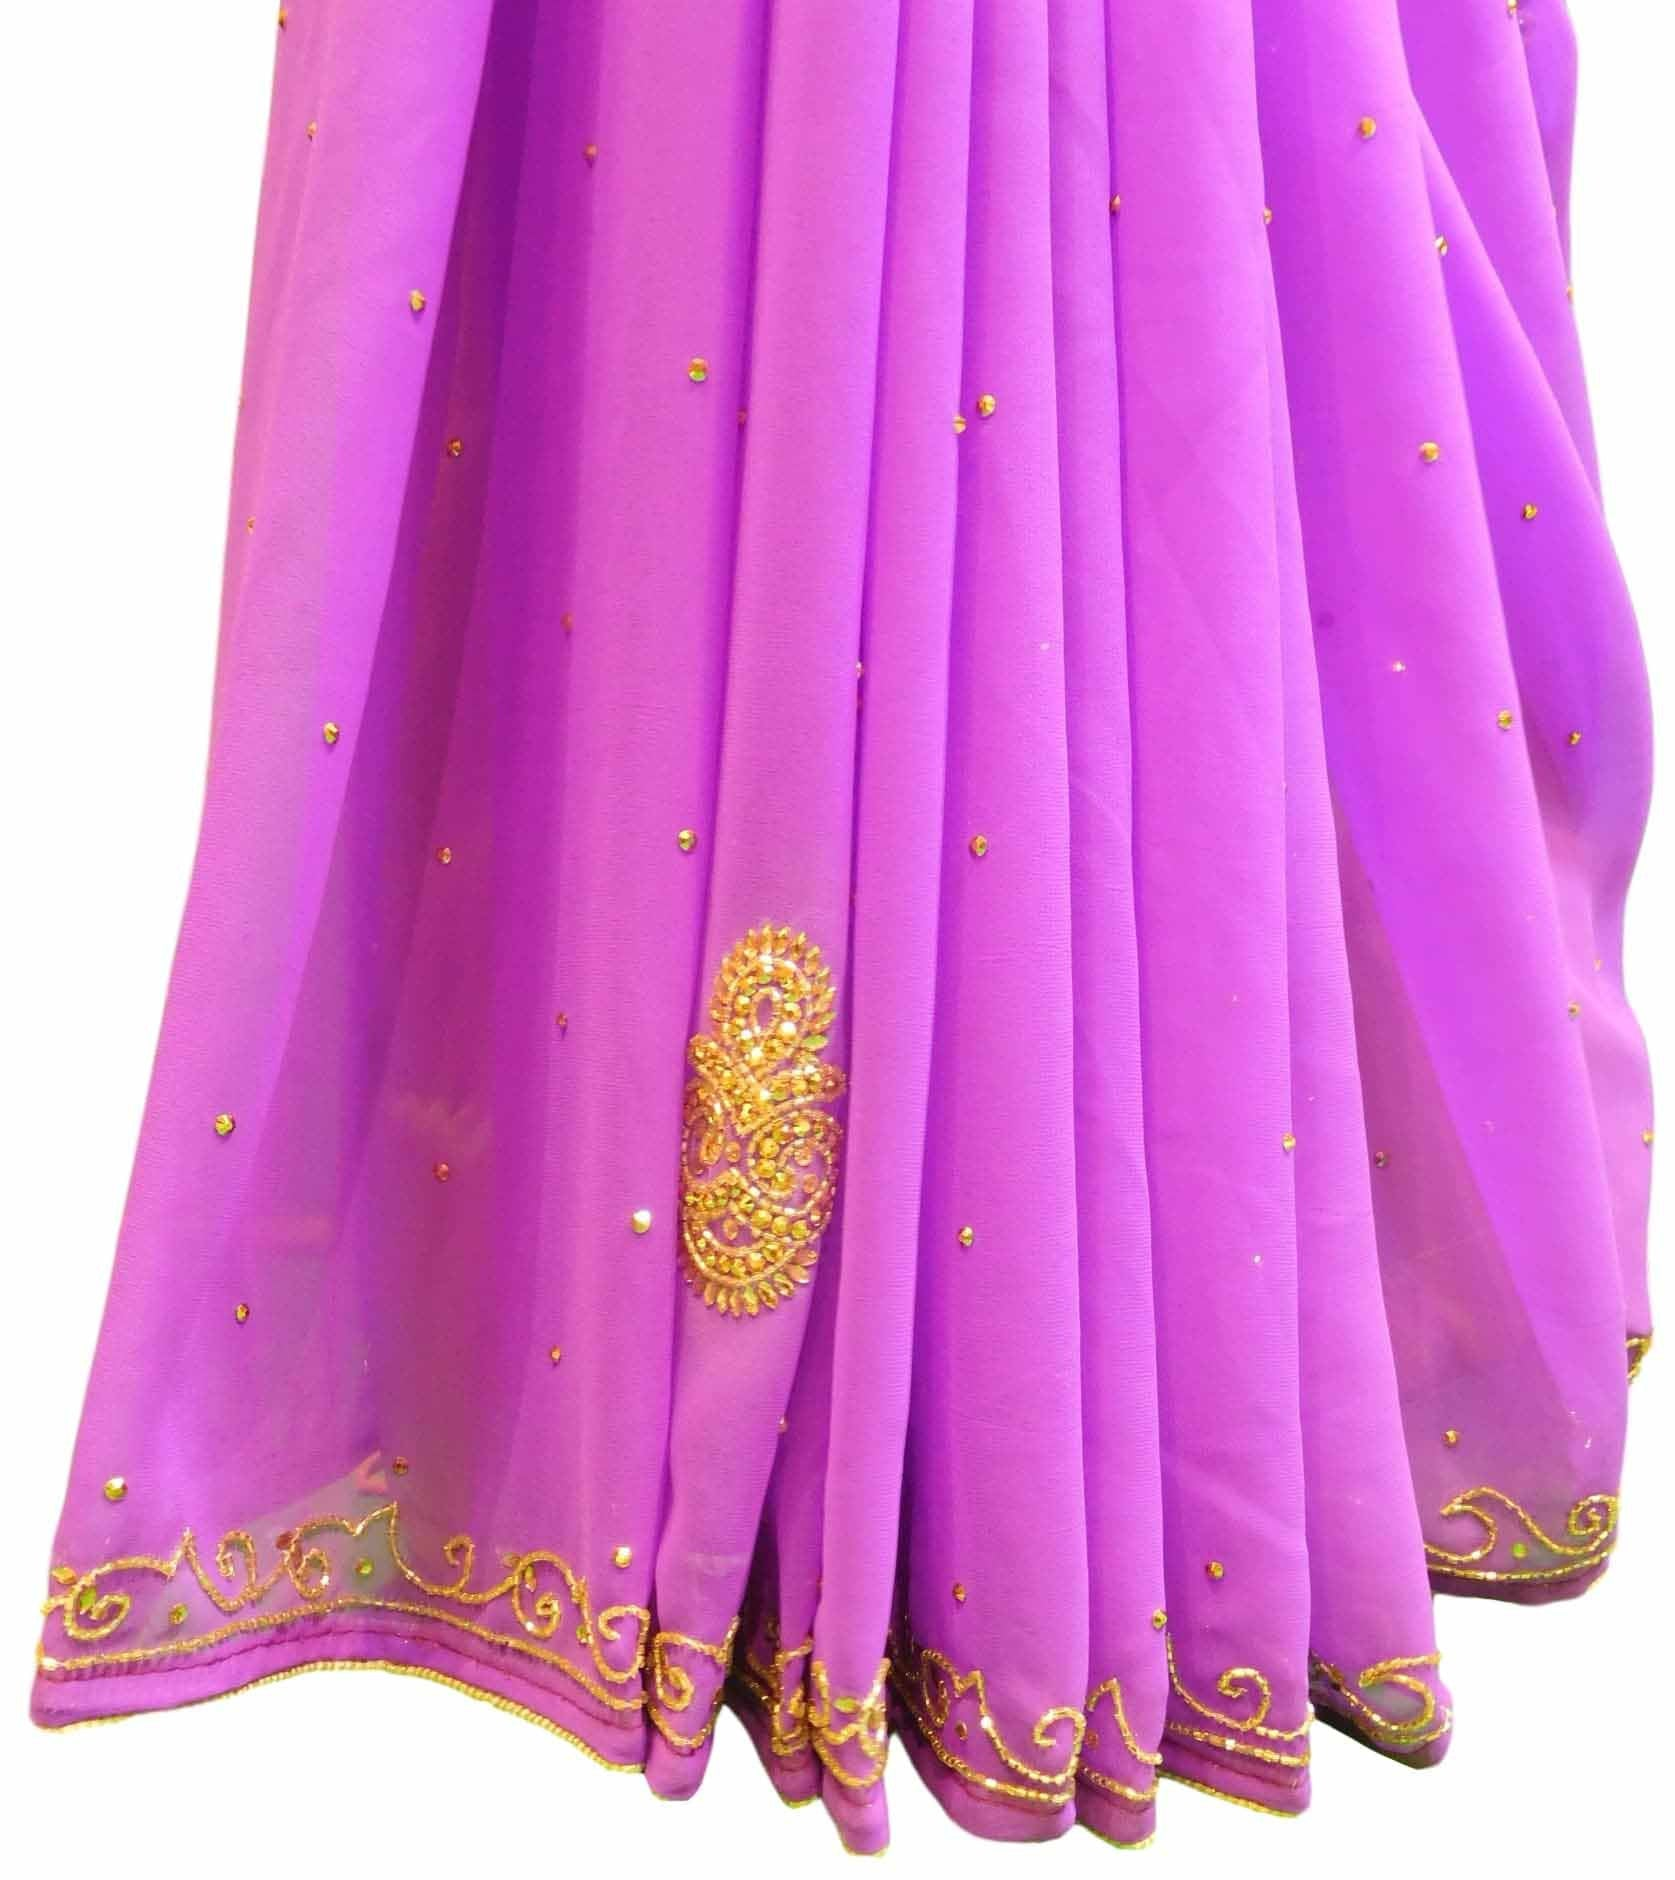 Violet Designer Georgette Sari Zari, Cutdana Thread Embroidery Work Saree